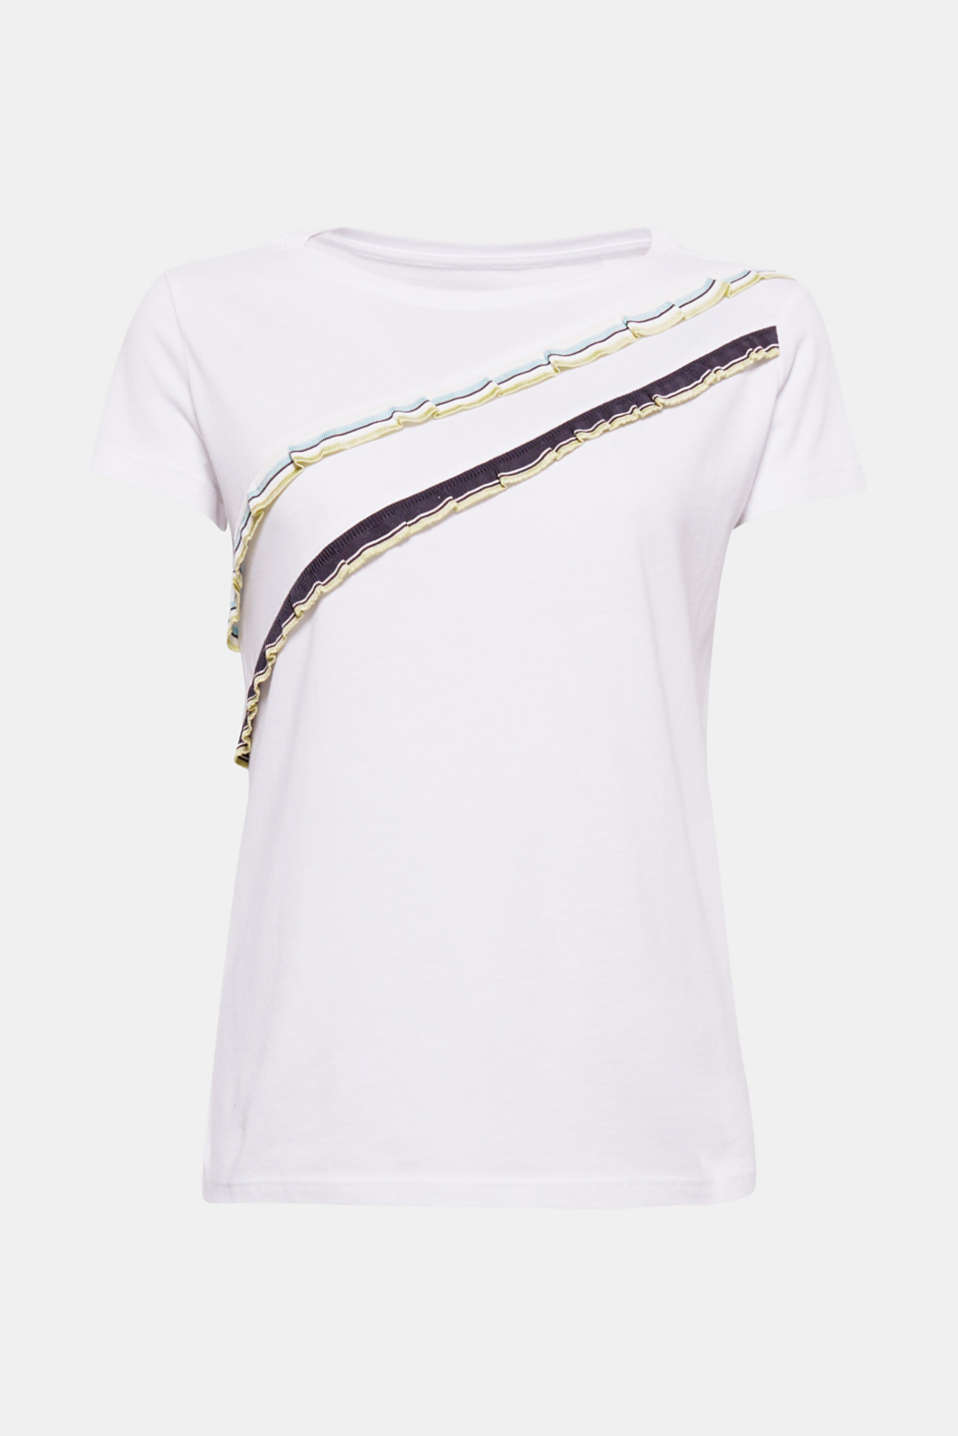 The striped, ribbed frills, running asymmetrically across the front, give this extra soft T-shirt its fashionable look.